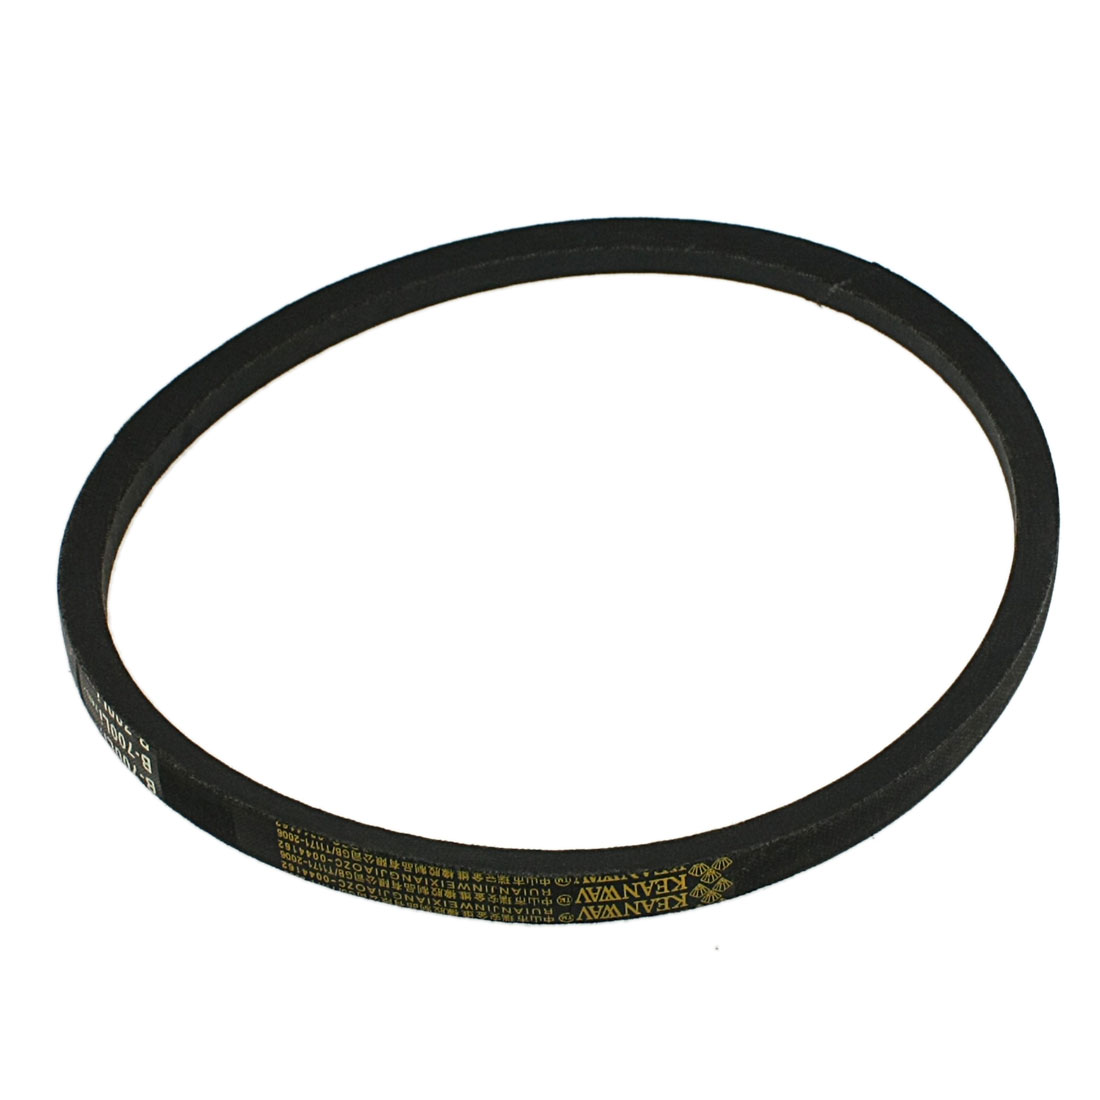 16mm x 700mm B Type Black Rubber Machinery Drive Band V Belt